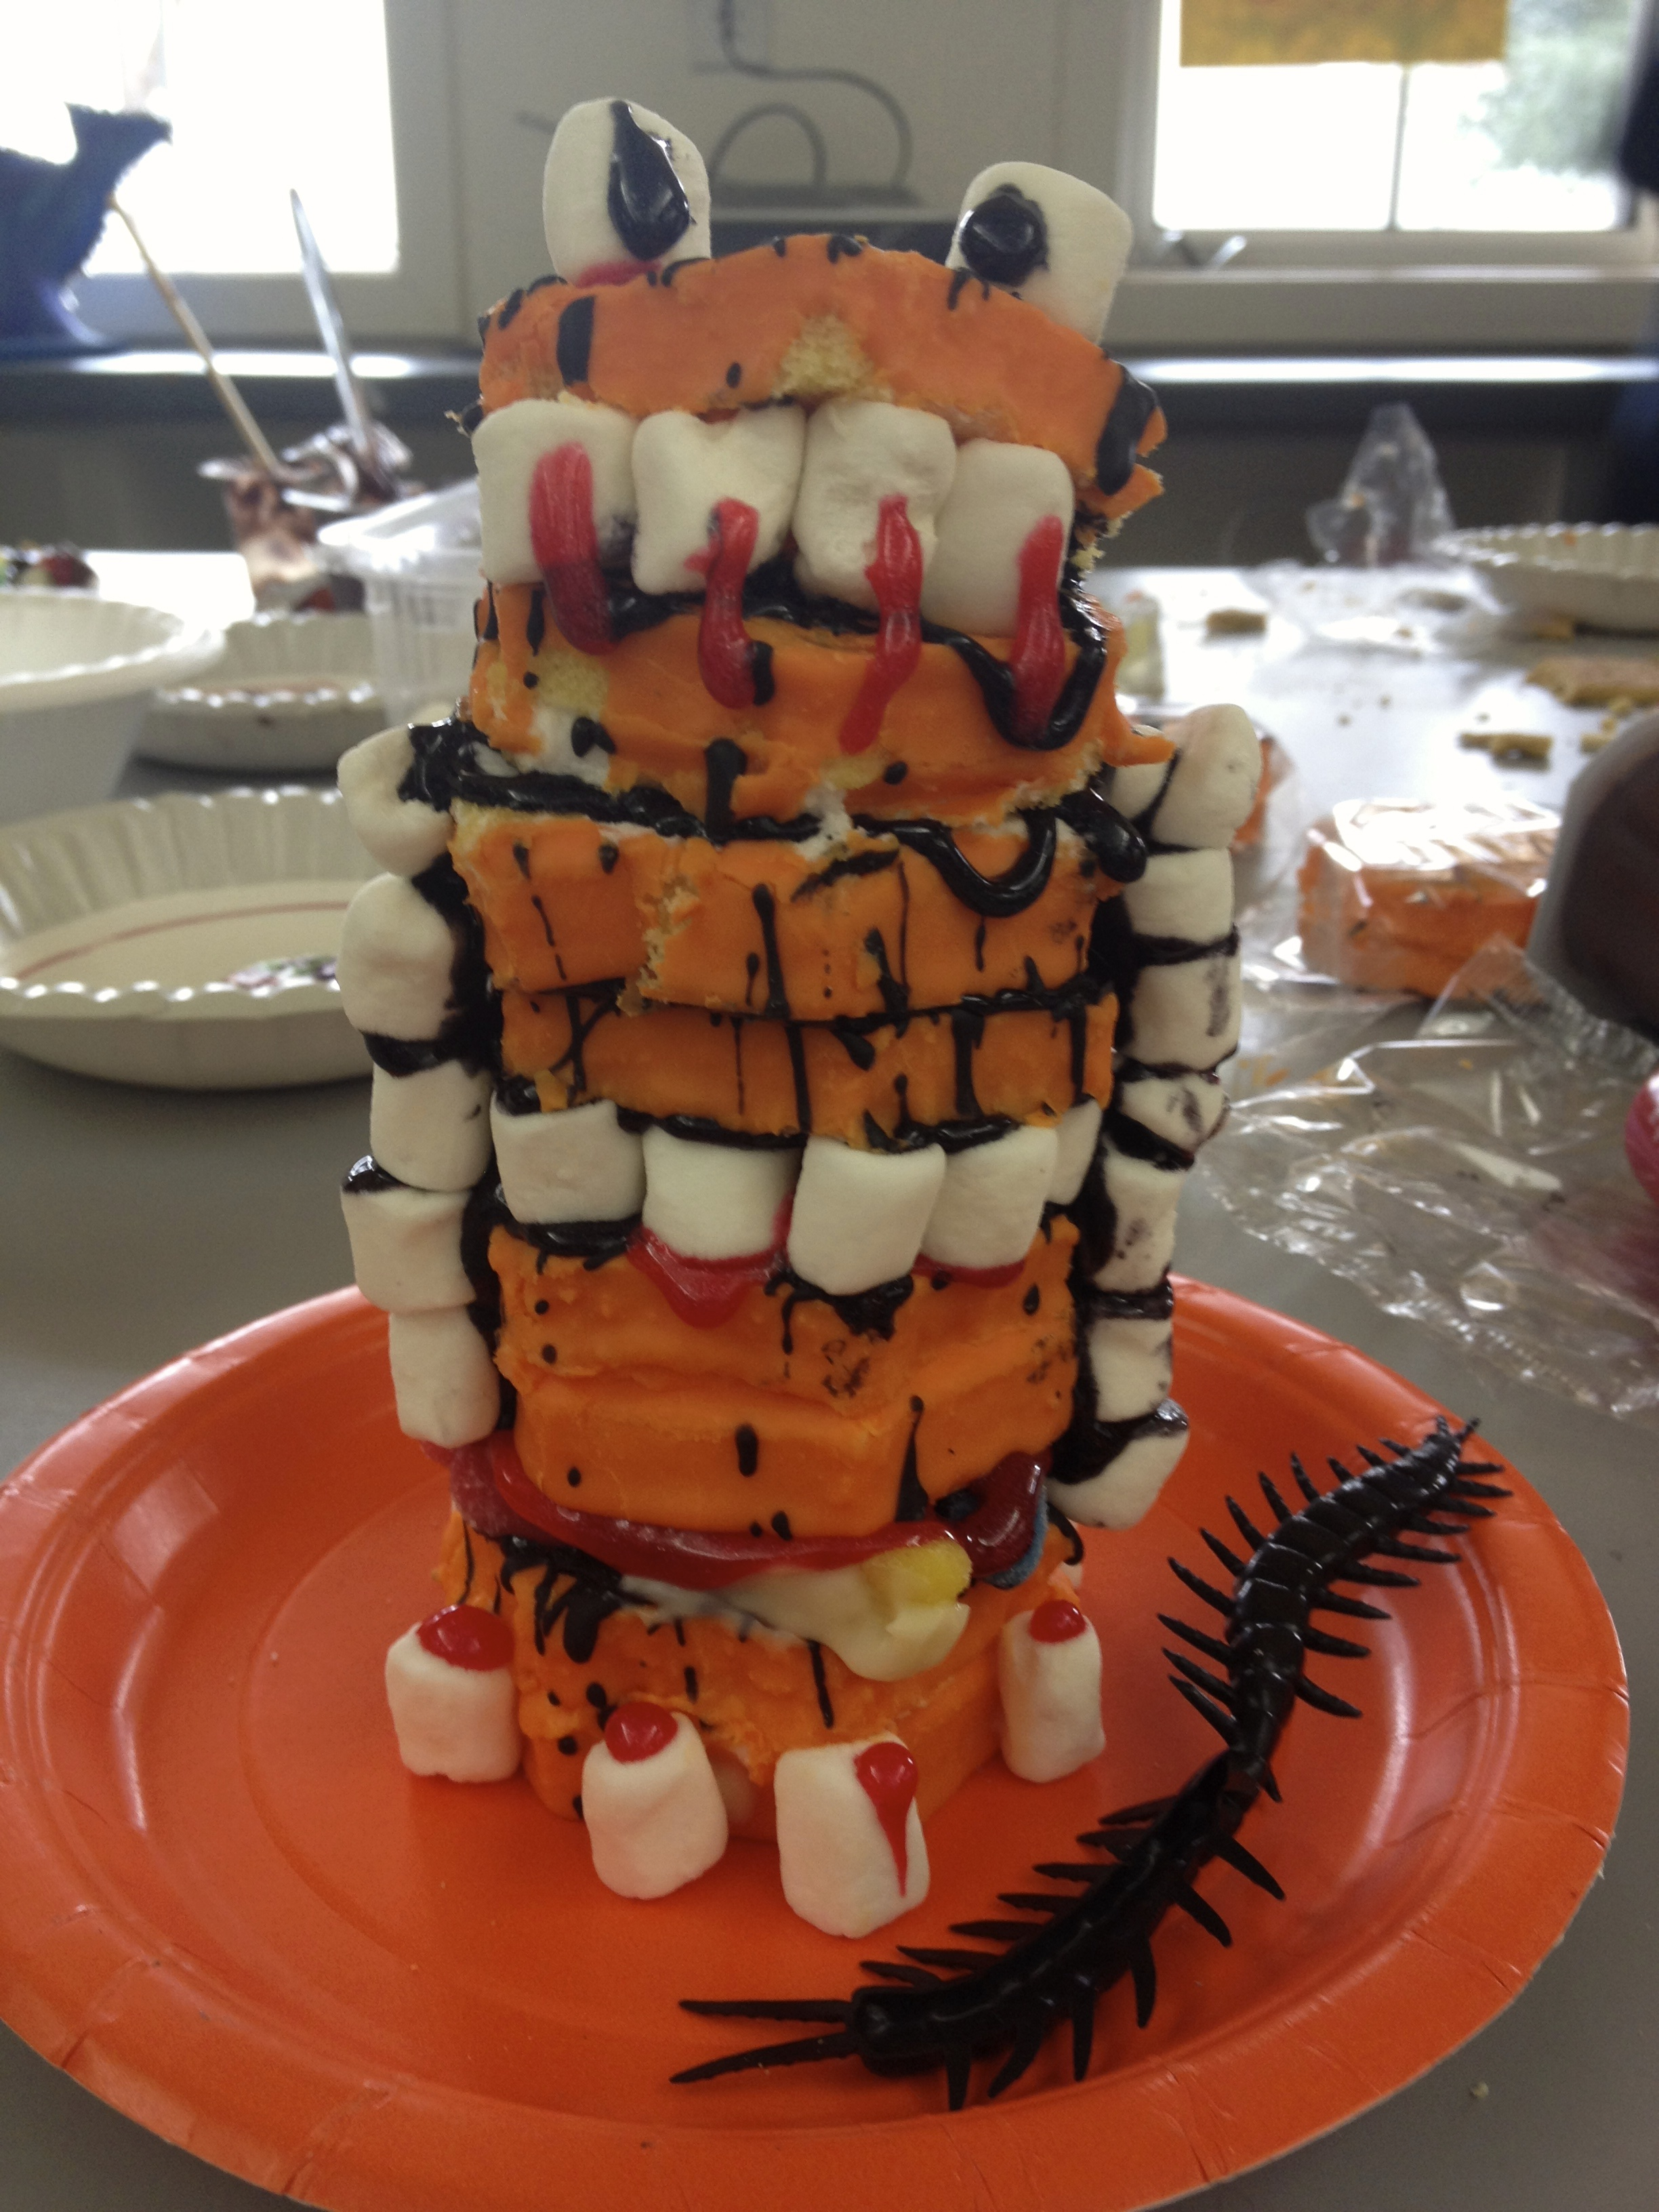 Halloween Party Fun with Edible Sculptures